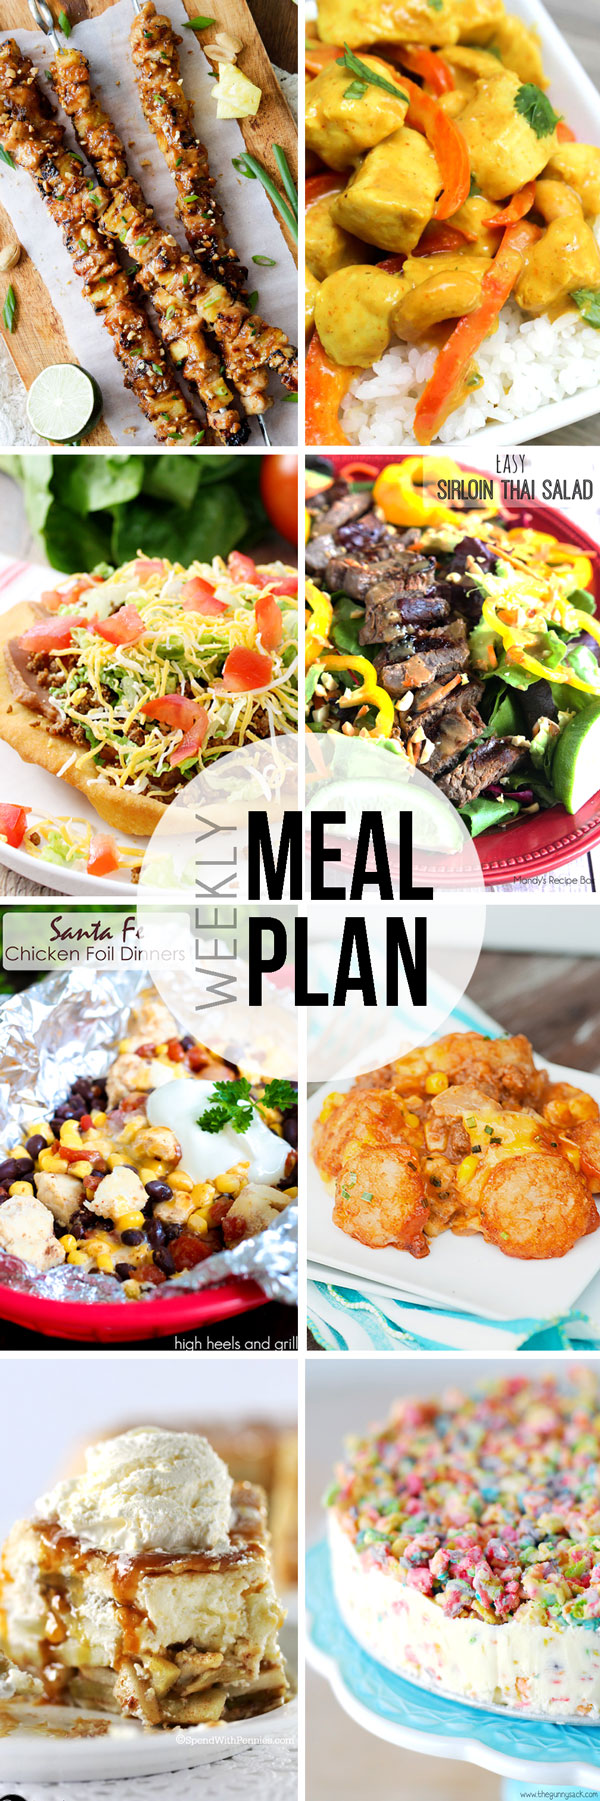 Easy Meal Plan Sunday #6.